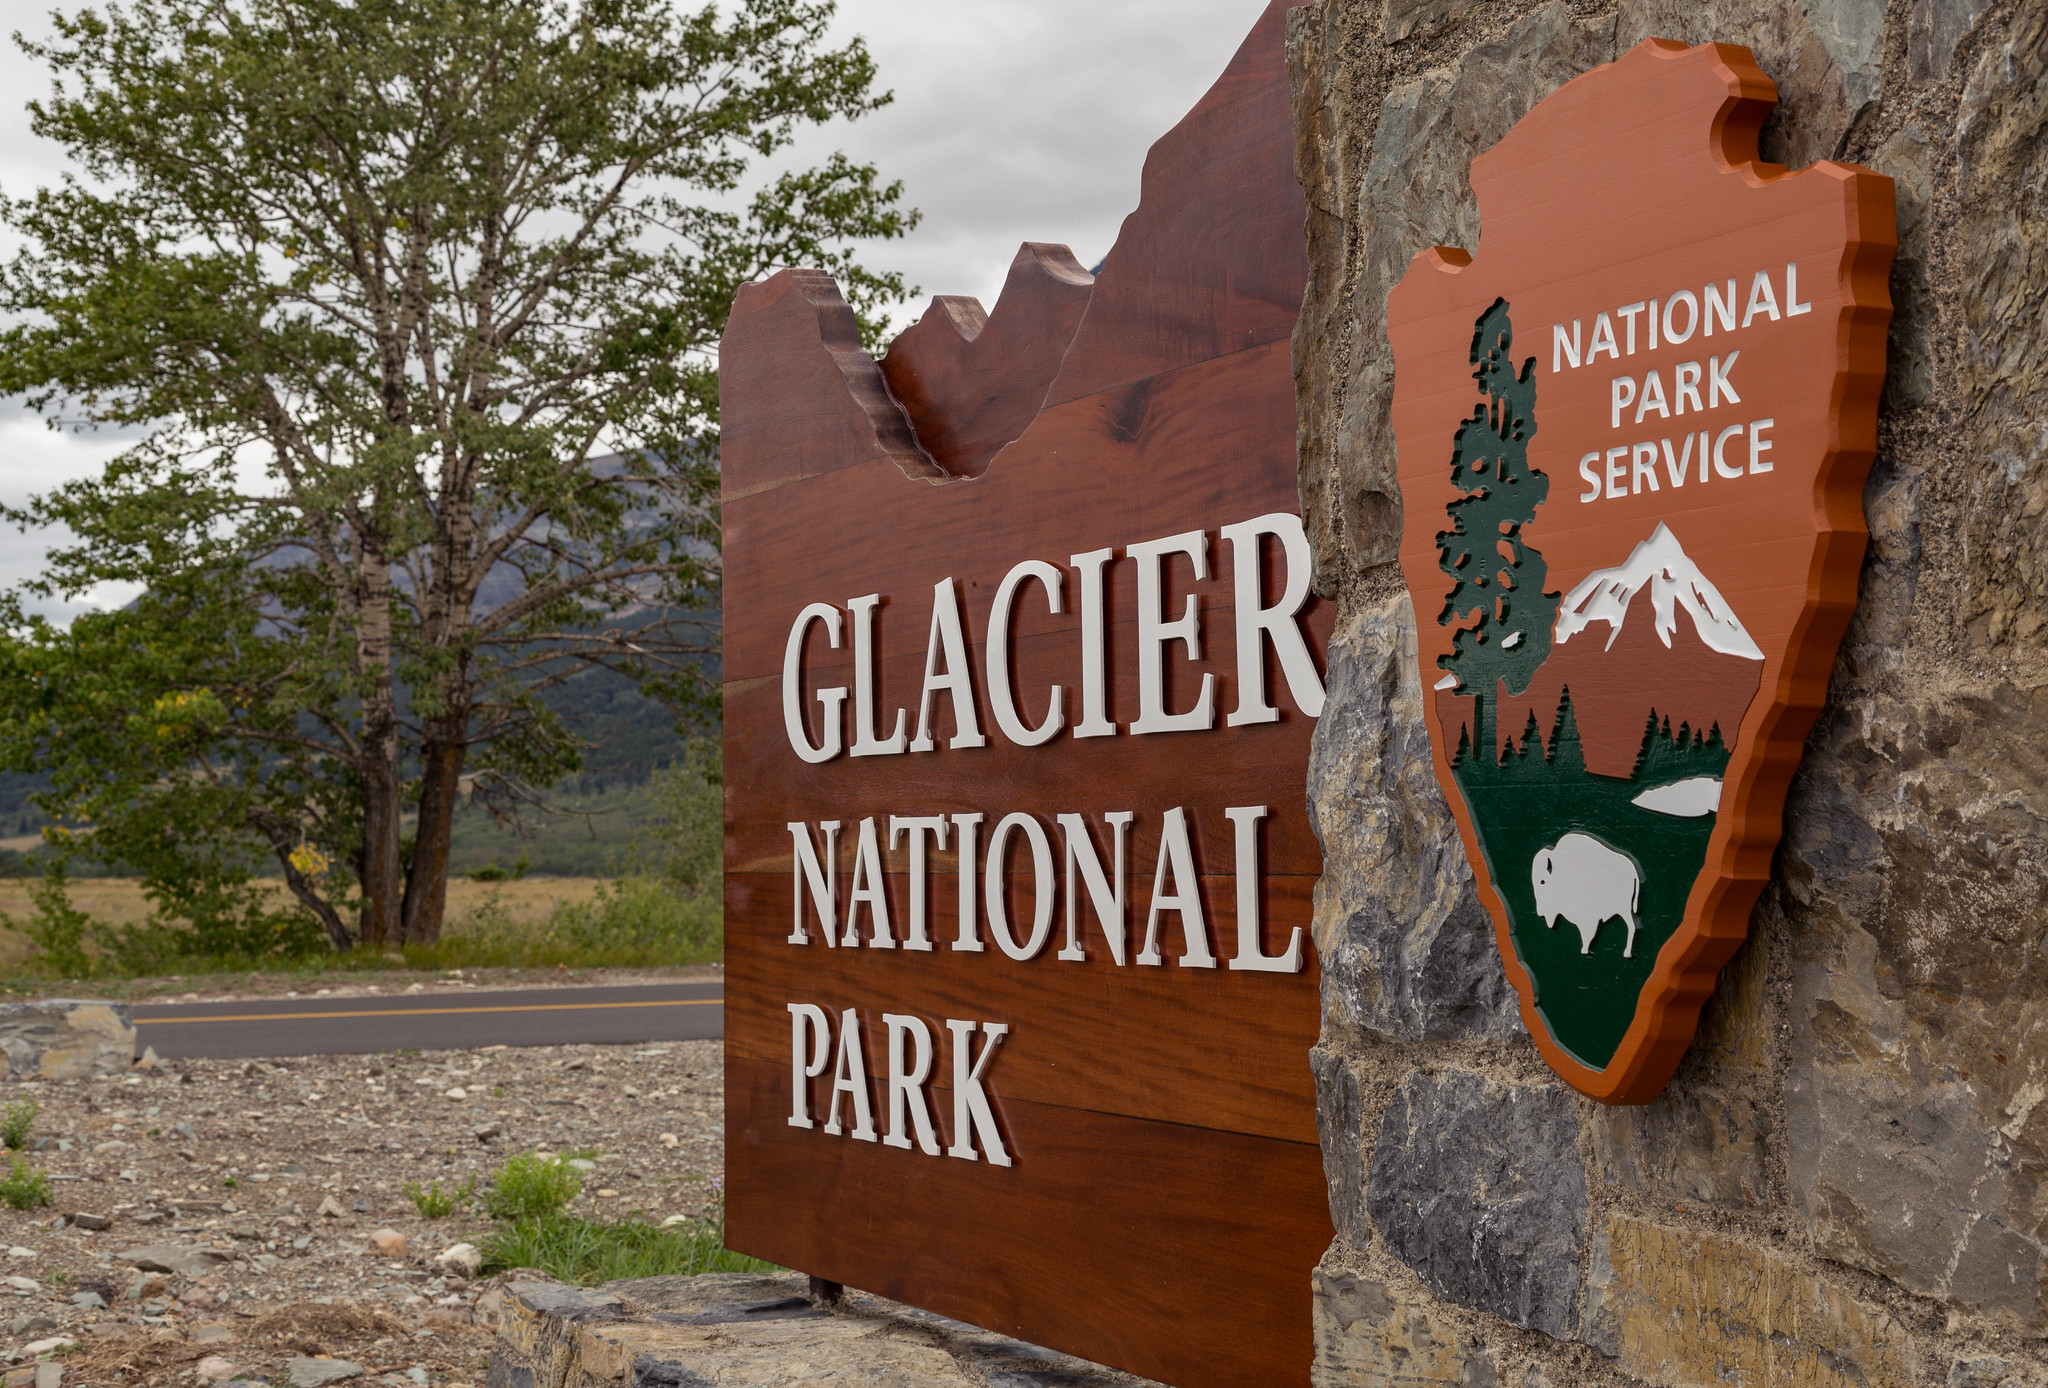 Glacier National Park closes over coronavirus concerns